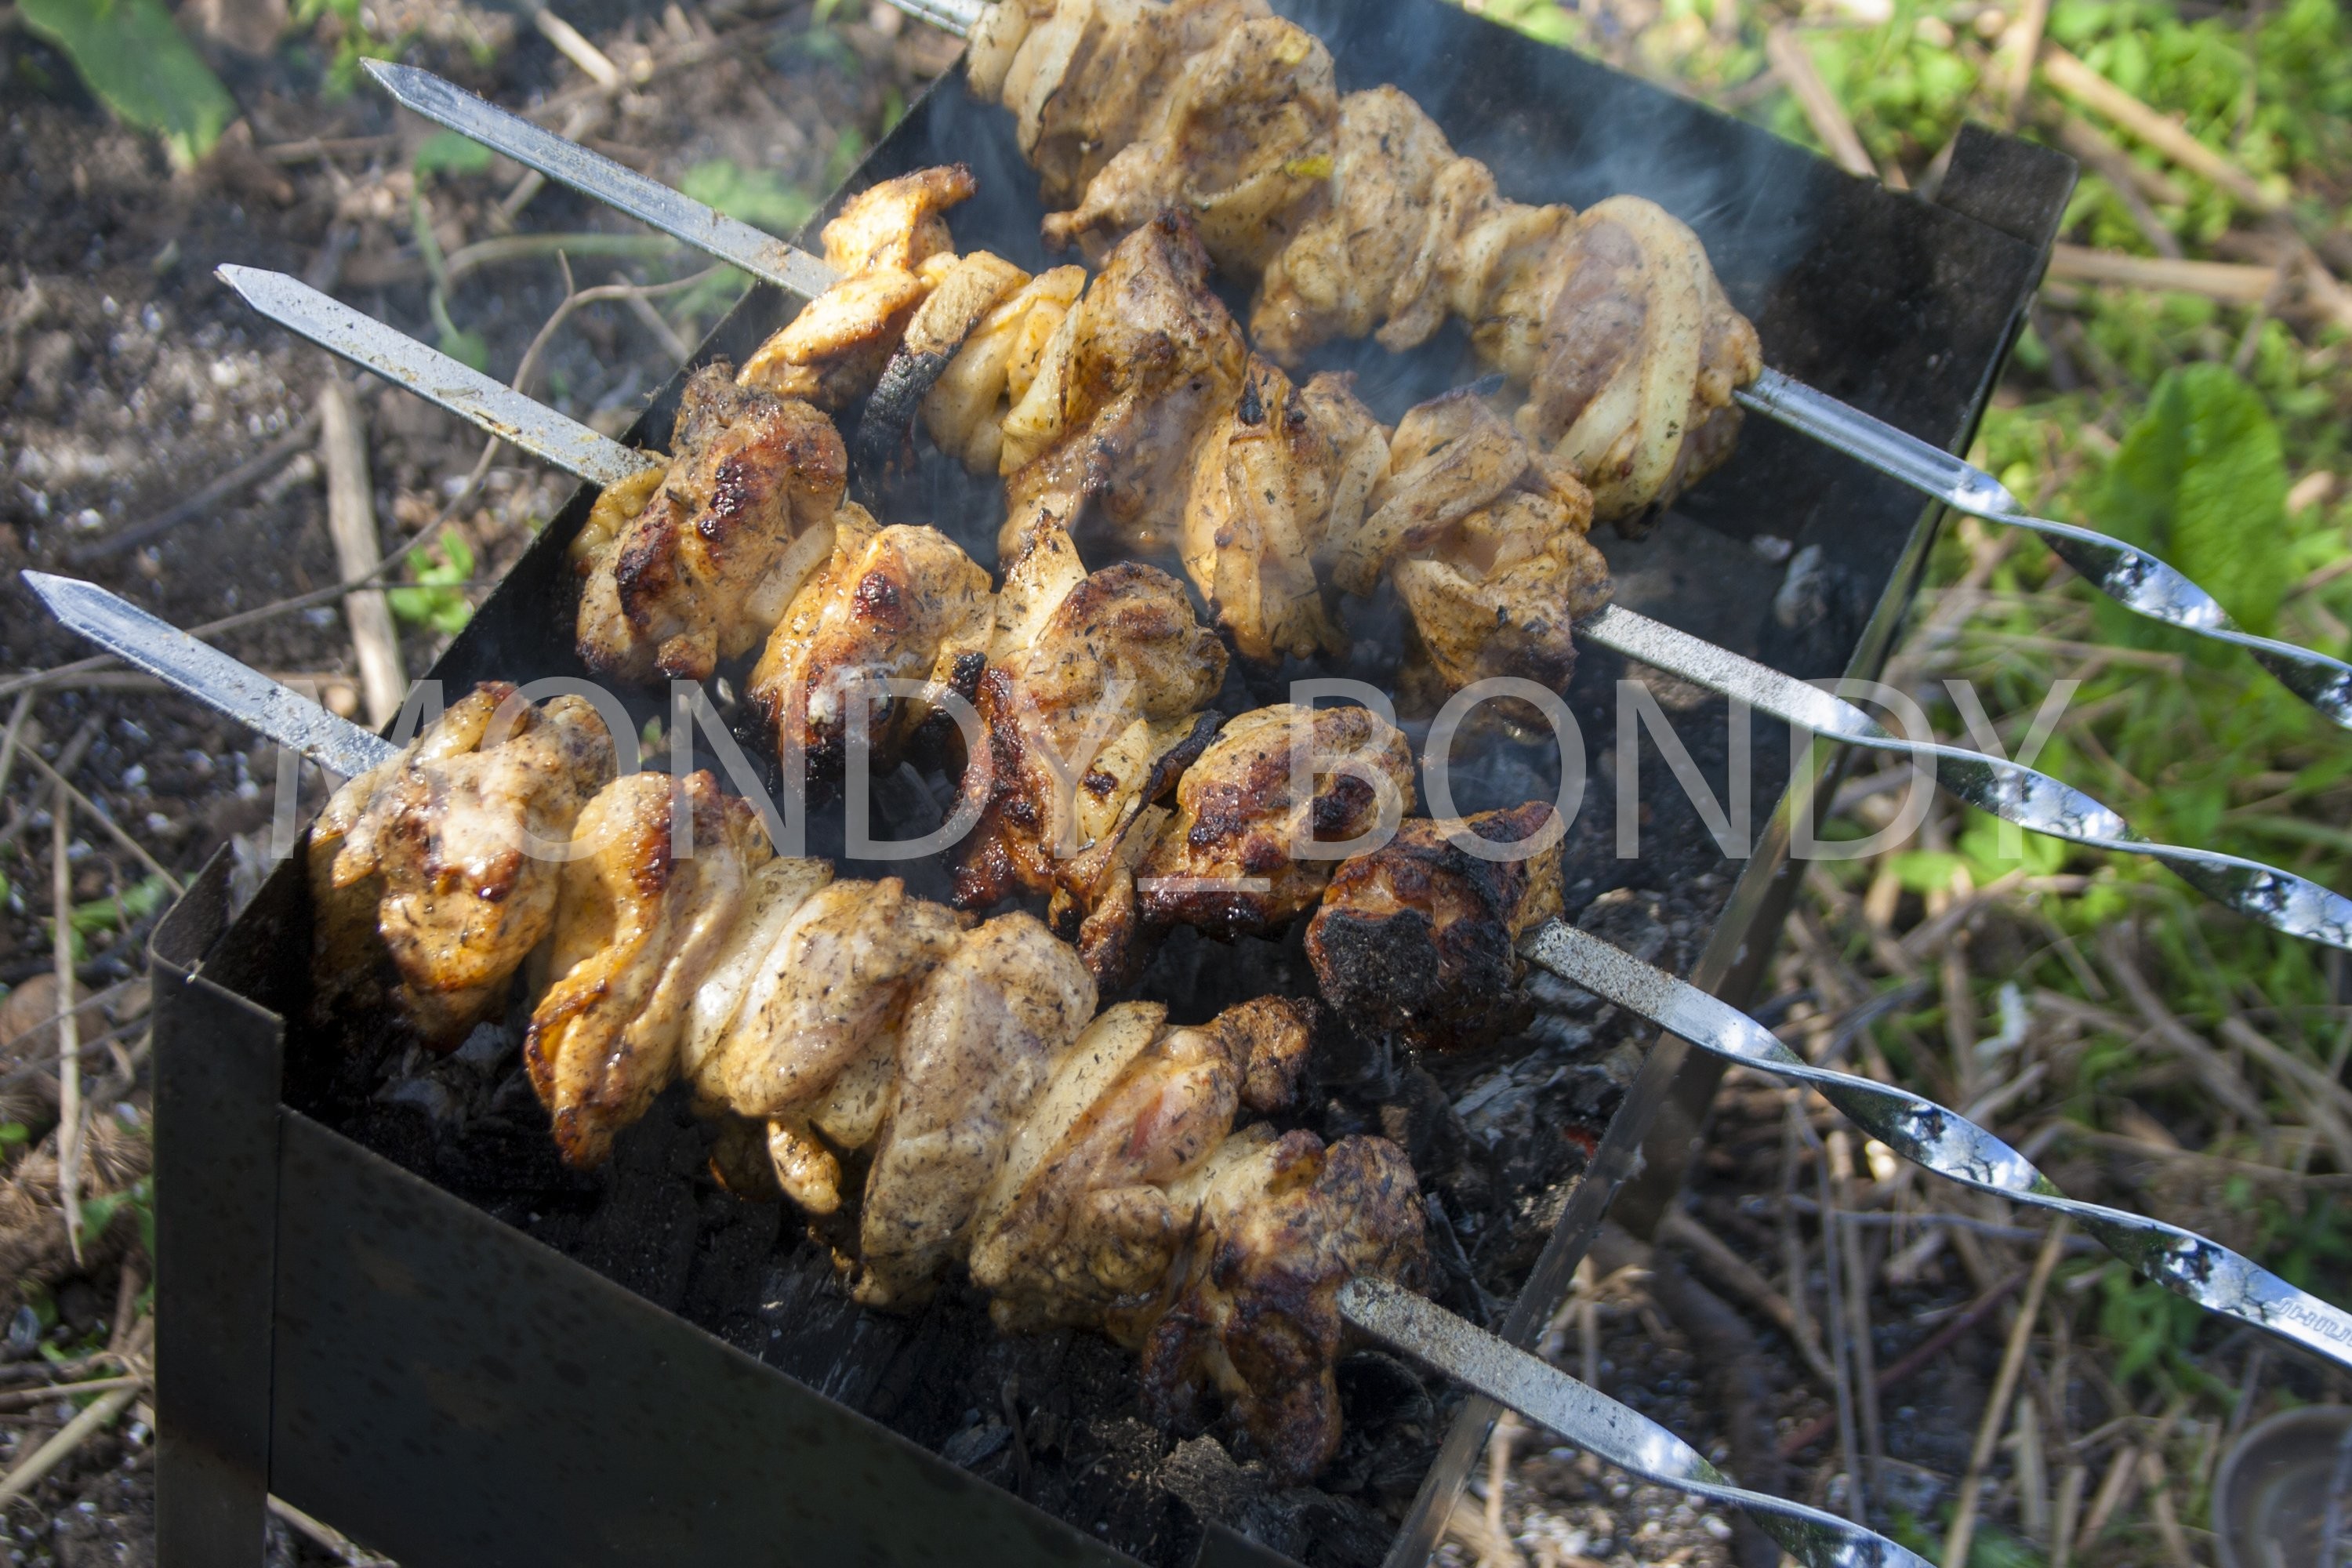 Grilled meat on the grill example image 1